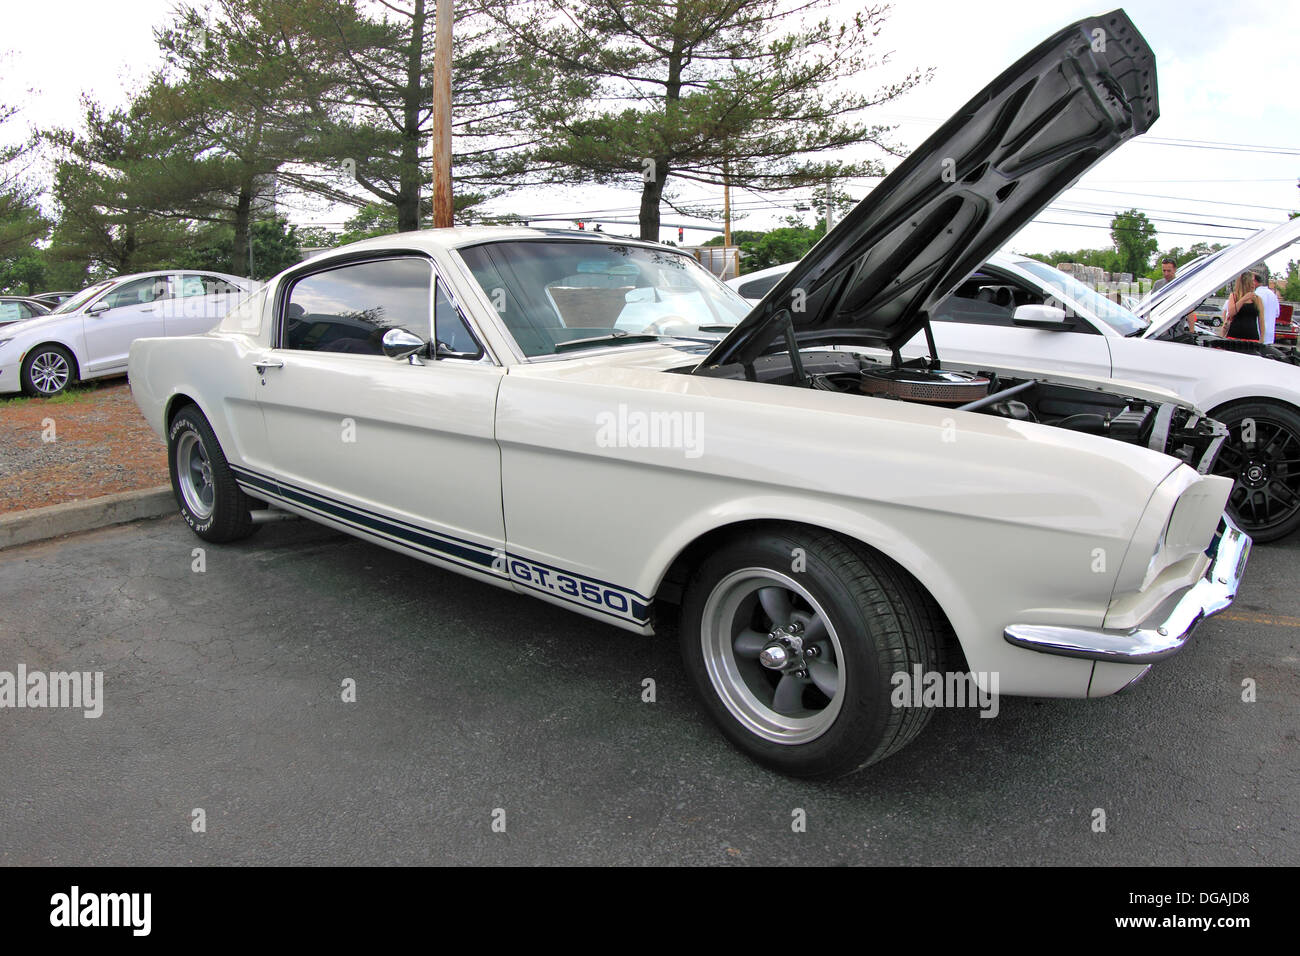 1967 Ford Mustang GT Fastback with 289 V8 high performance engine